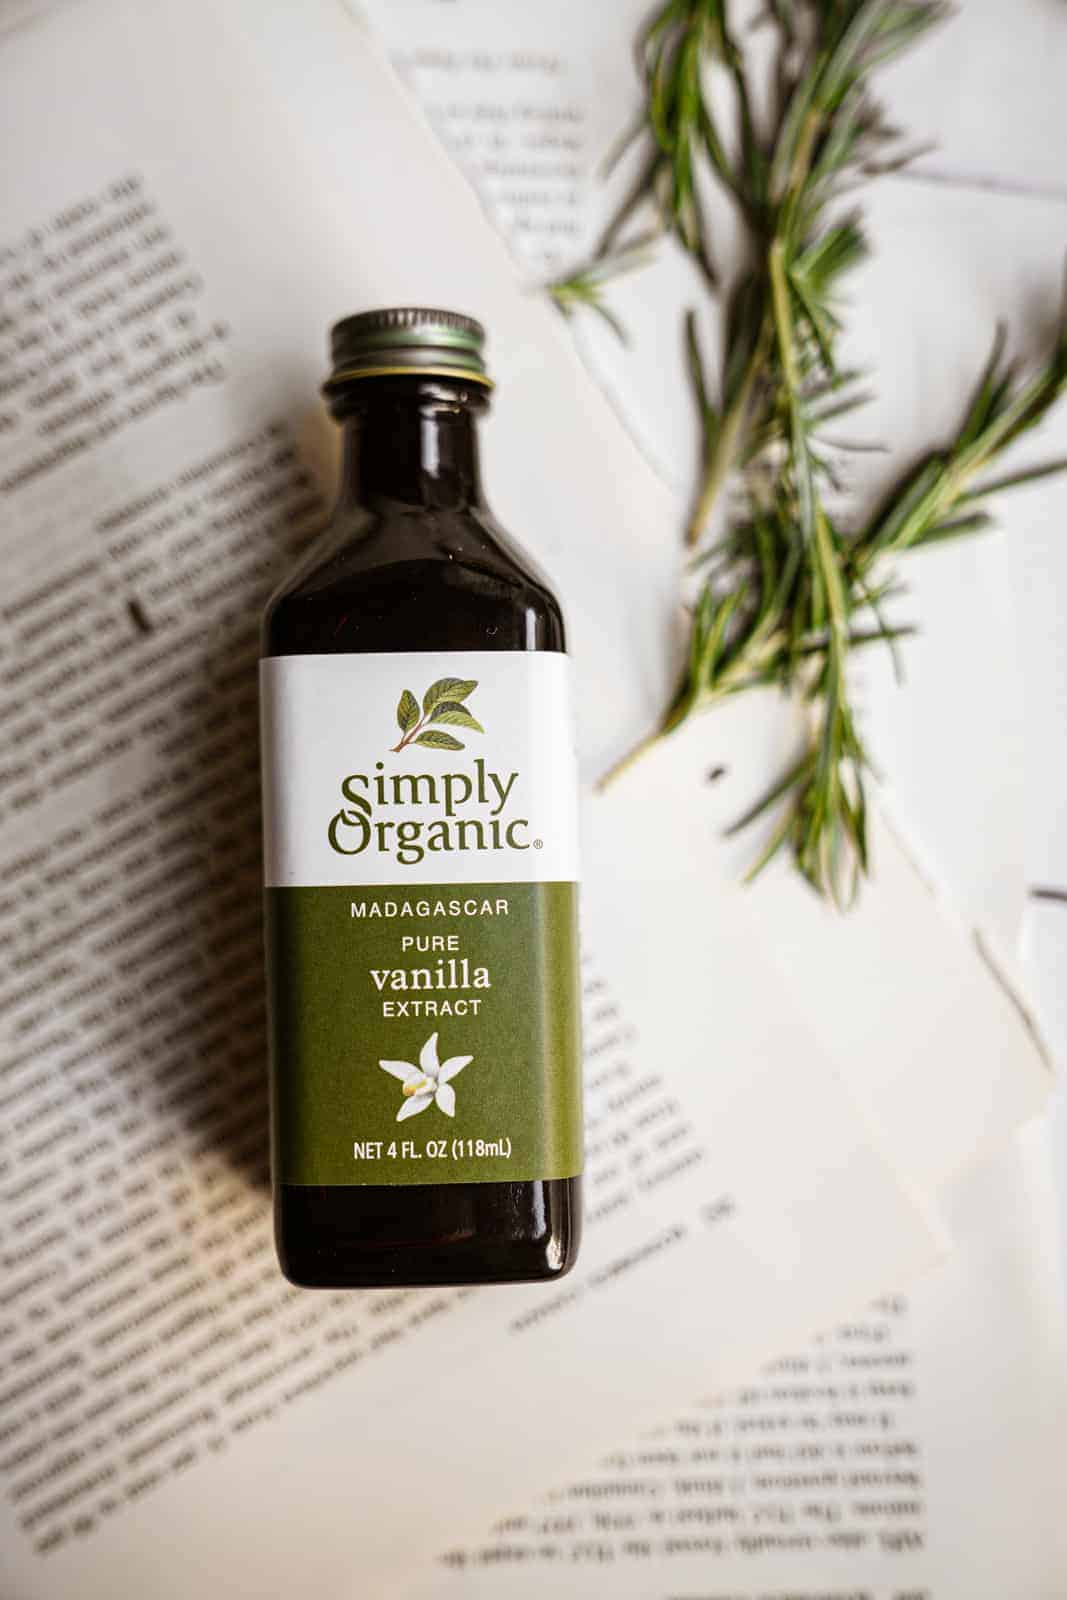 Simply Organics Pure Vanilla Extract laying on top of recipe with rosemary sprigs.